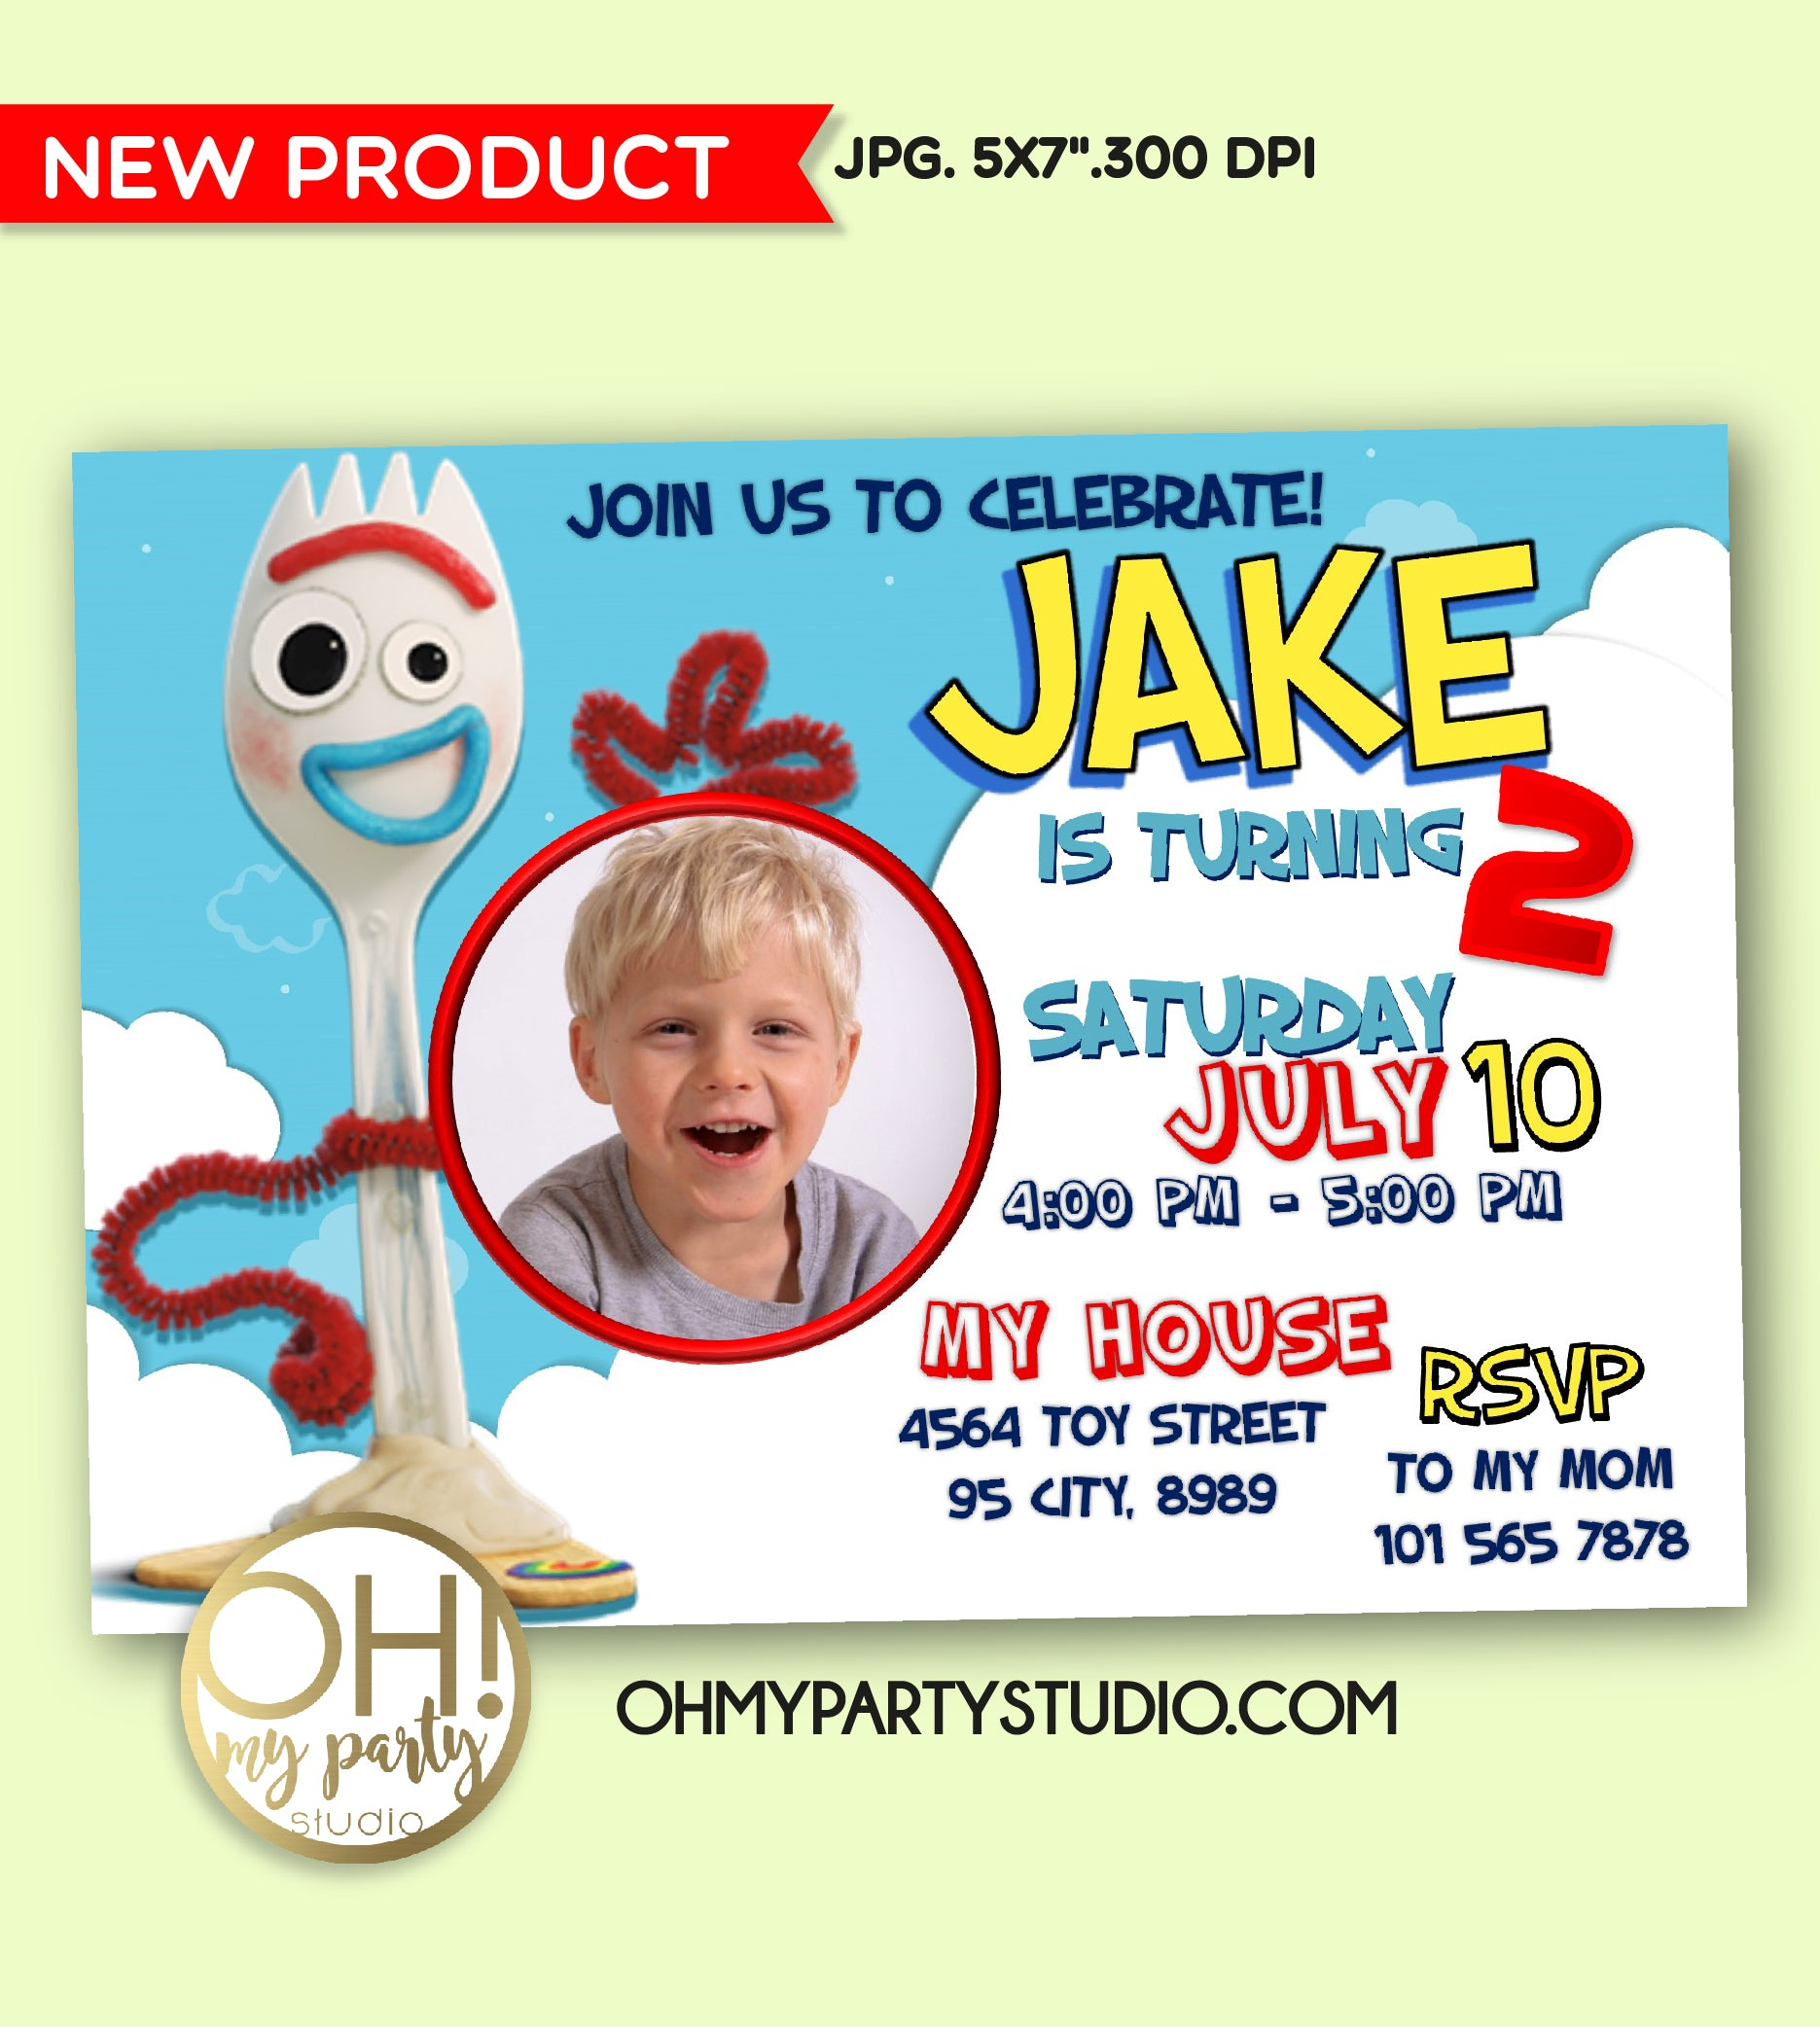 TOY STORY 4 BIRTHDAY INVITATION, TOY STORY PARTY IDEAS, TOY STORY 4 BIRTHDAY PARTY, TOY STORY 4 CARNIVAL, TOY STORY 4 CIRCUS, TOY STORY 4 BIRTHDAY PARTY INVITATION, TOY STORY 4 INVITE , TOY STORY 4 INVITATIONS, TOY STORY 4 PARTY, TOY STORY 4 CARD, TOY STORY 4 BIRTHDAY, FORKY INVITATION, FORKY INVITATIONS, FORKY PRINTABLES, FORKY PARTY, FORKY BIRTHDAY, FORKY INVITATIONS